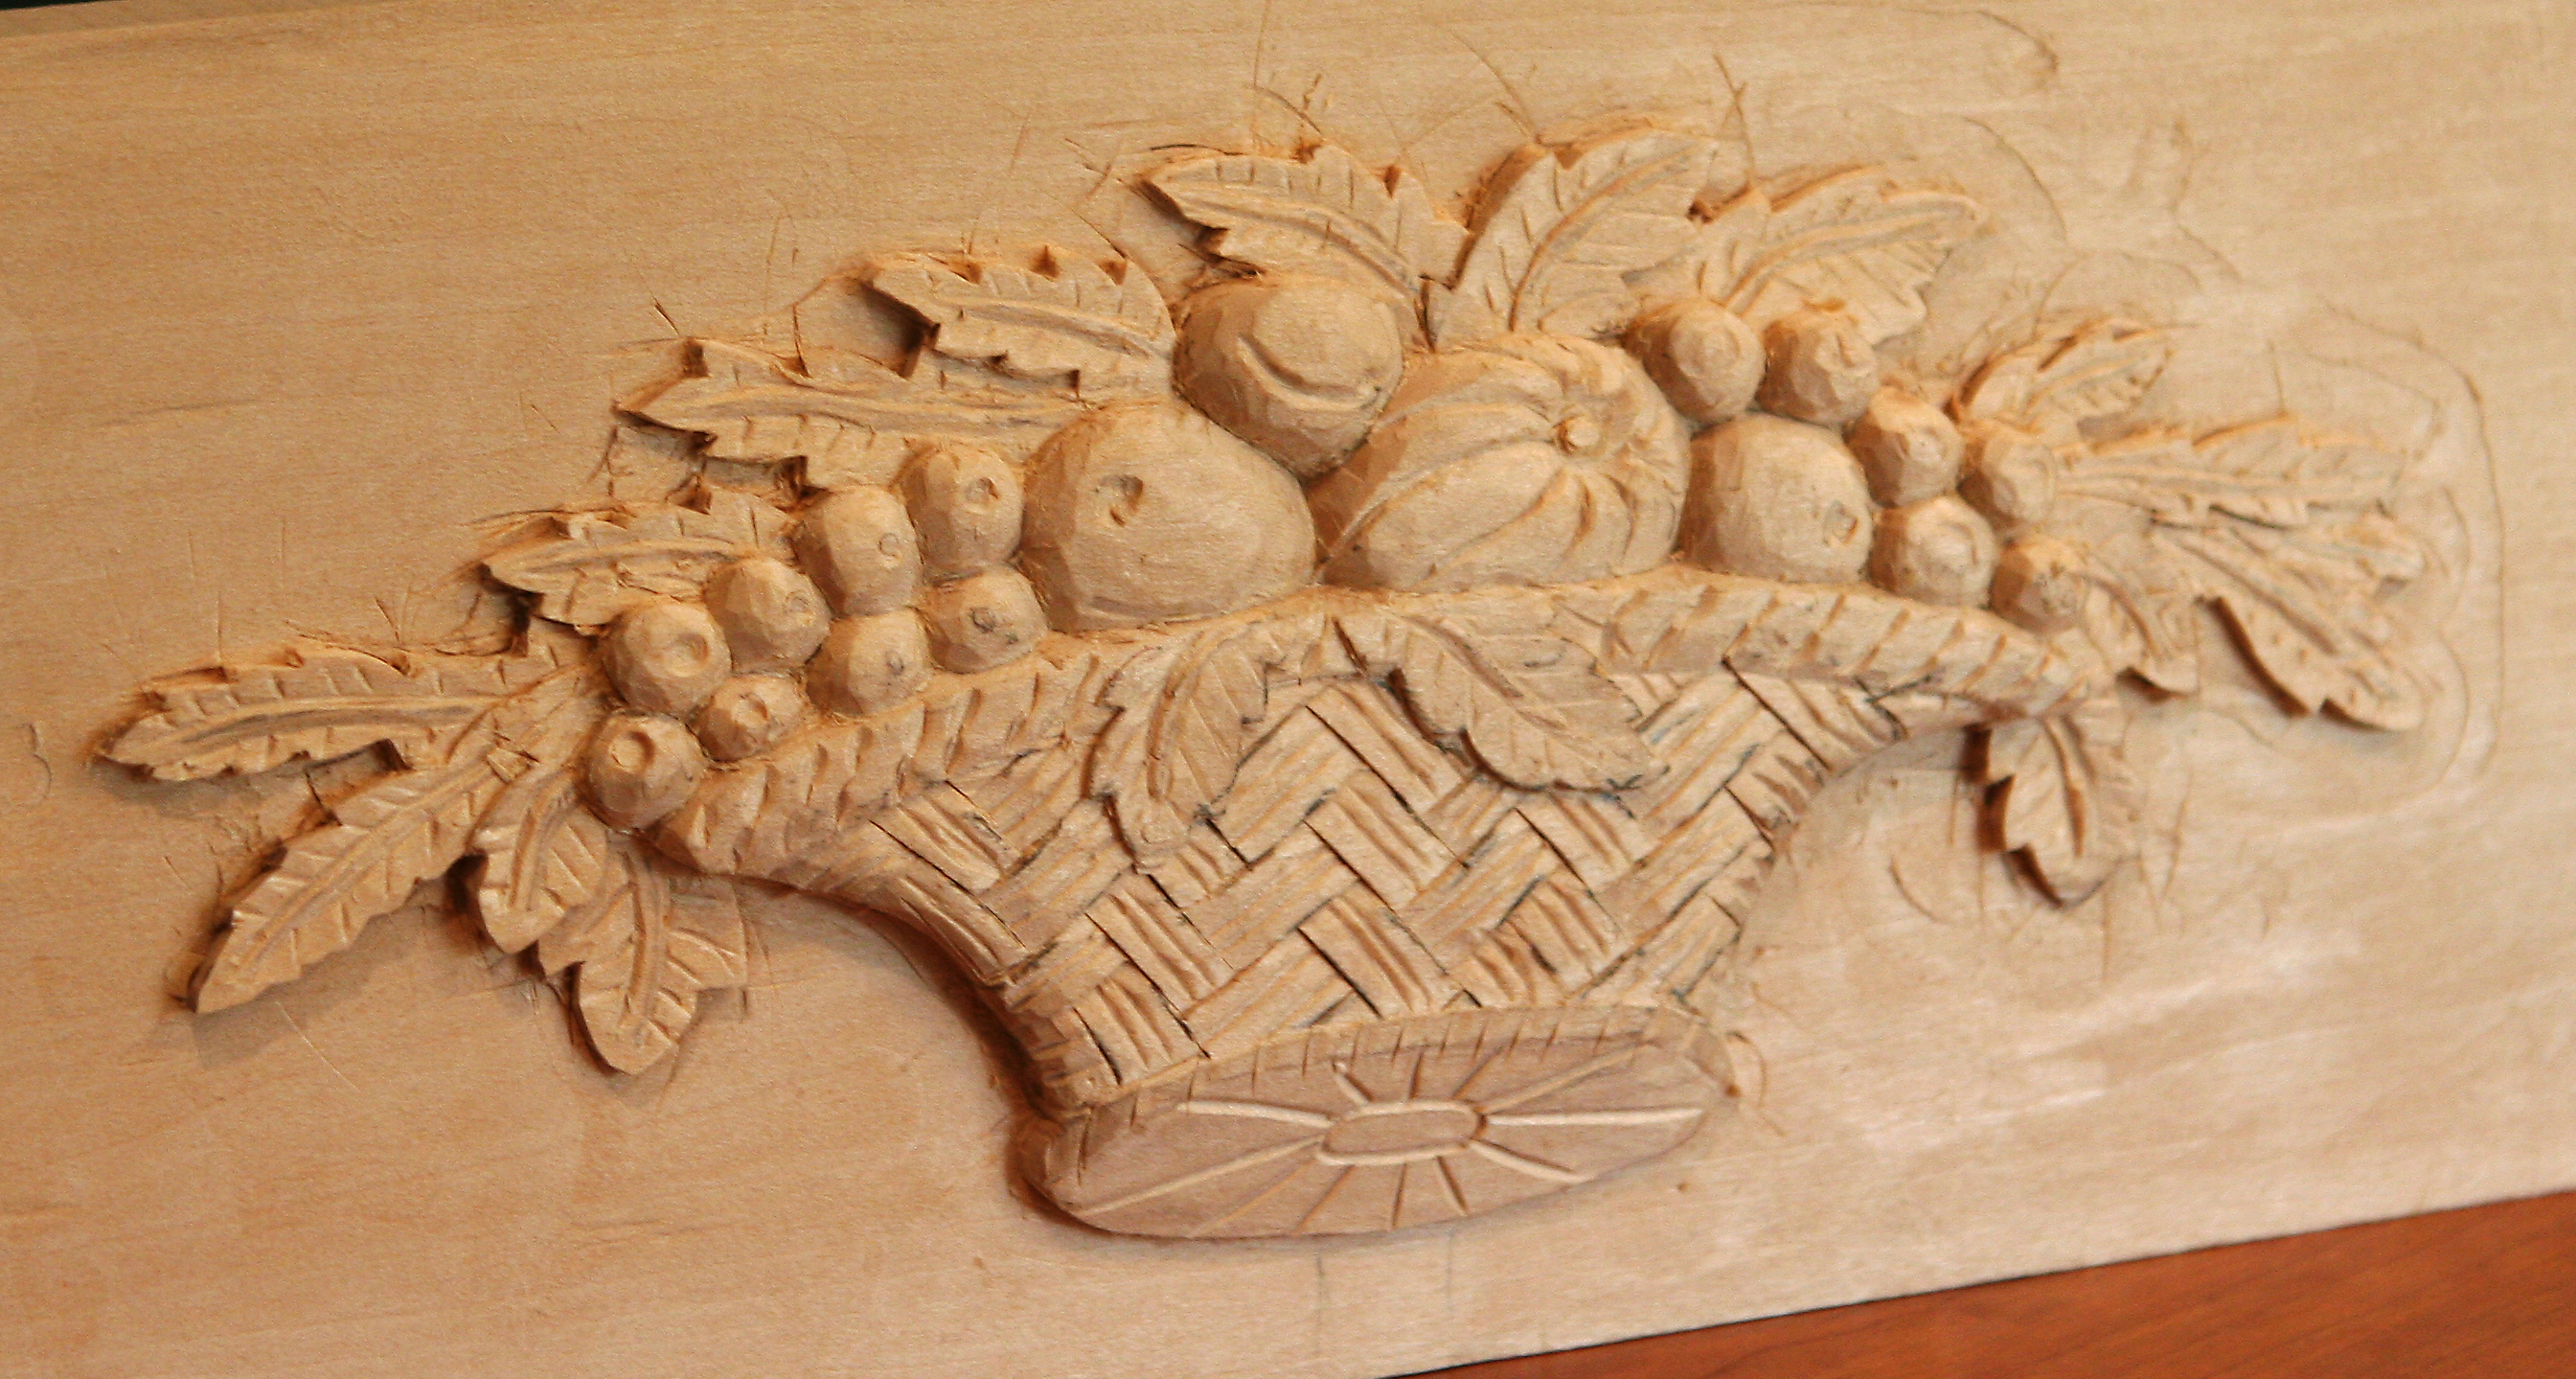 Relief carving images reverse search